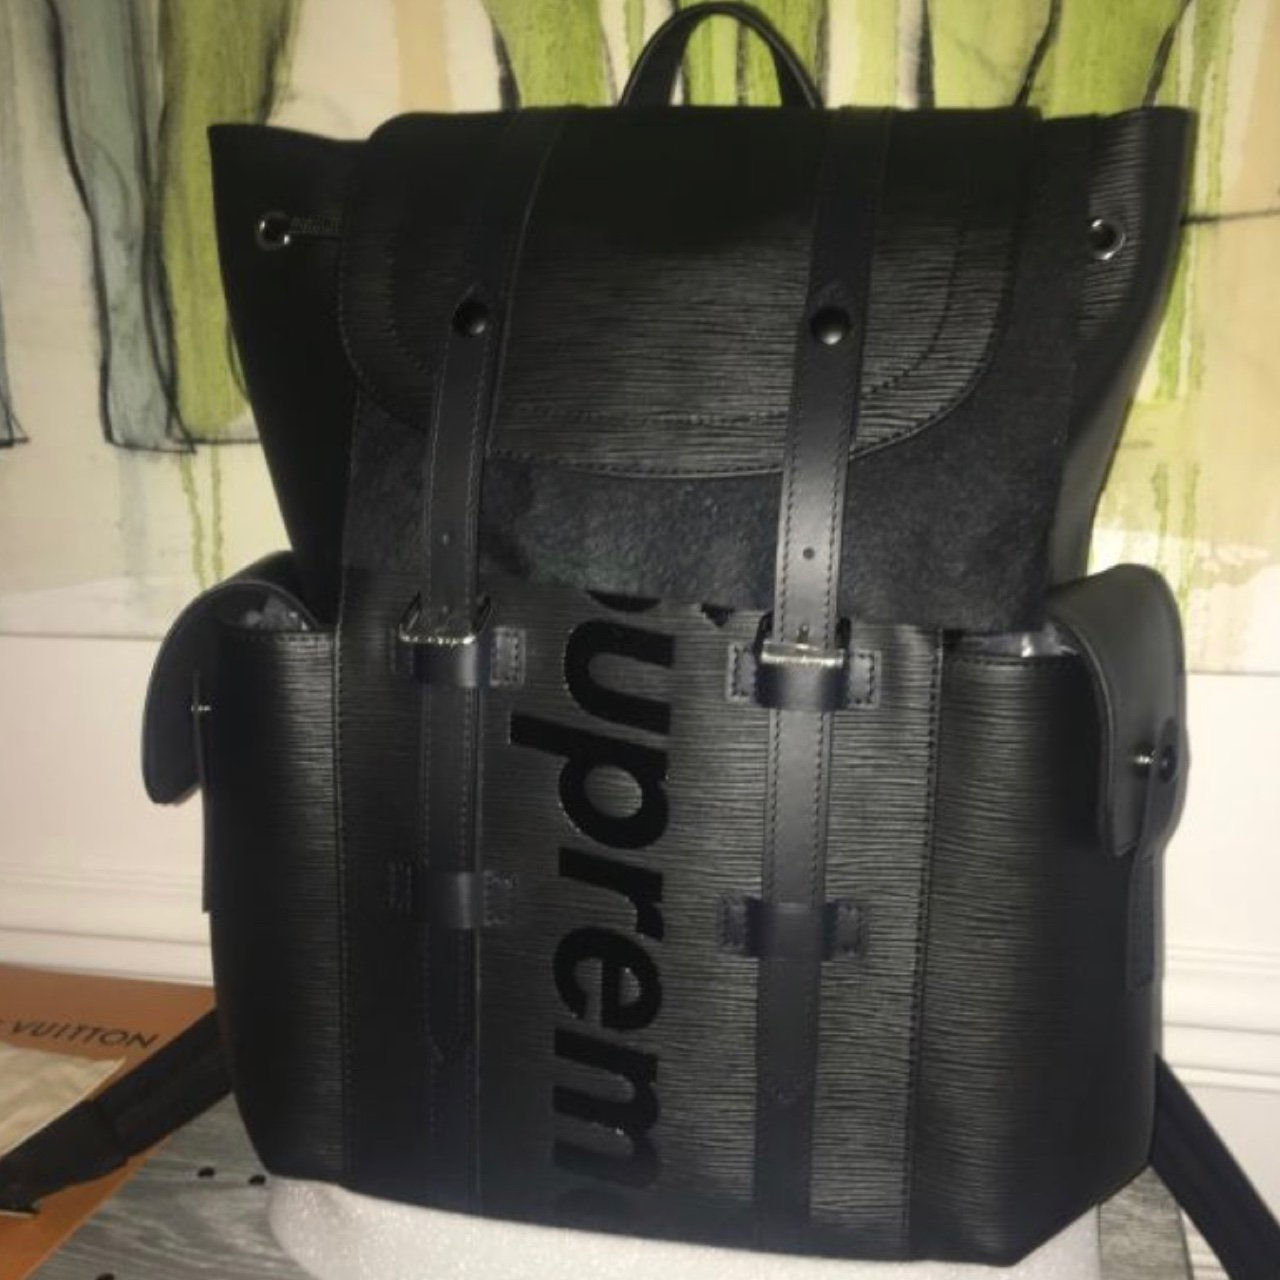 826b2e143f03 Louis vuitton x supreme collab backpack Neuf with receipt - Depop